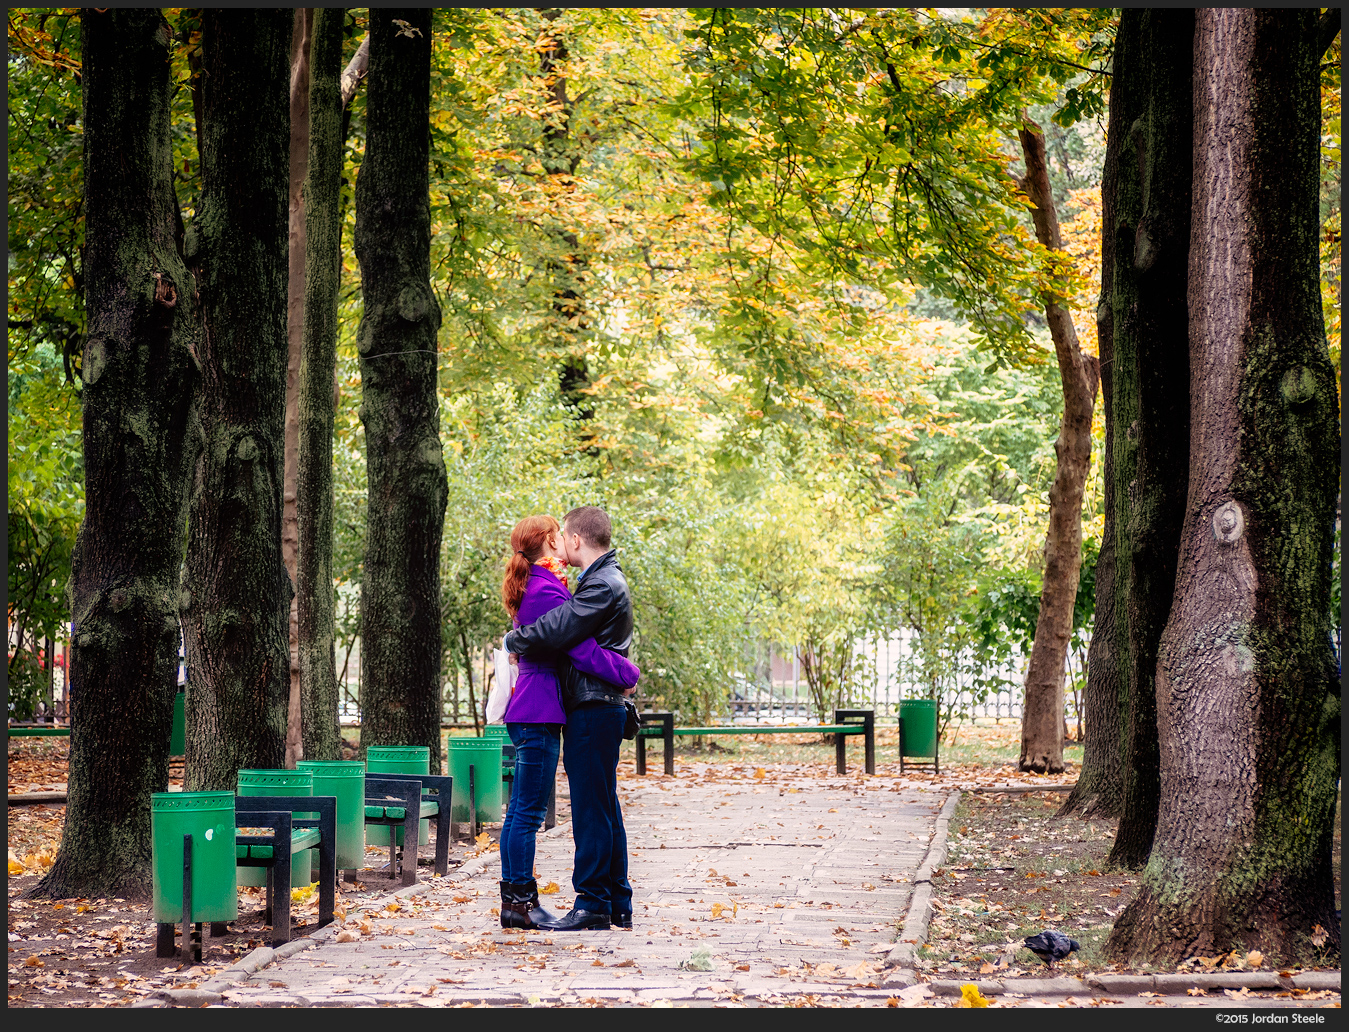 Autumn Love, Chisinau, Moldova - Olympus OM-D E-M5 with 40-150mm @